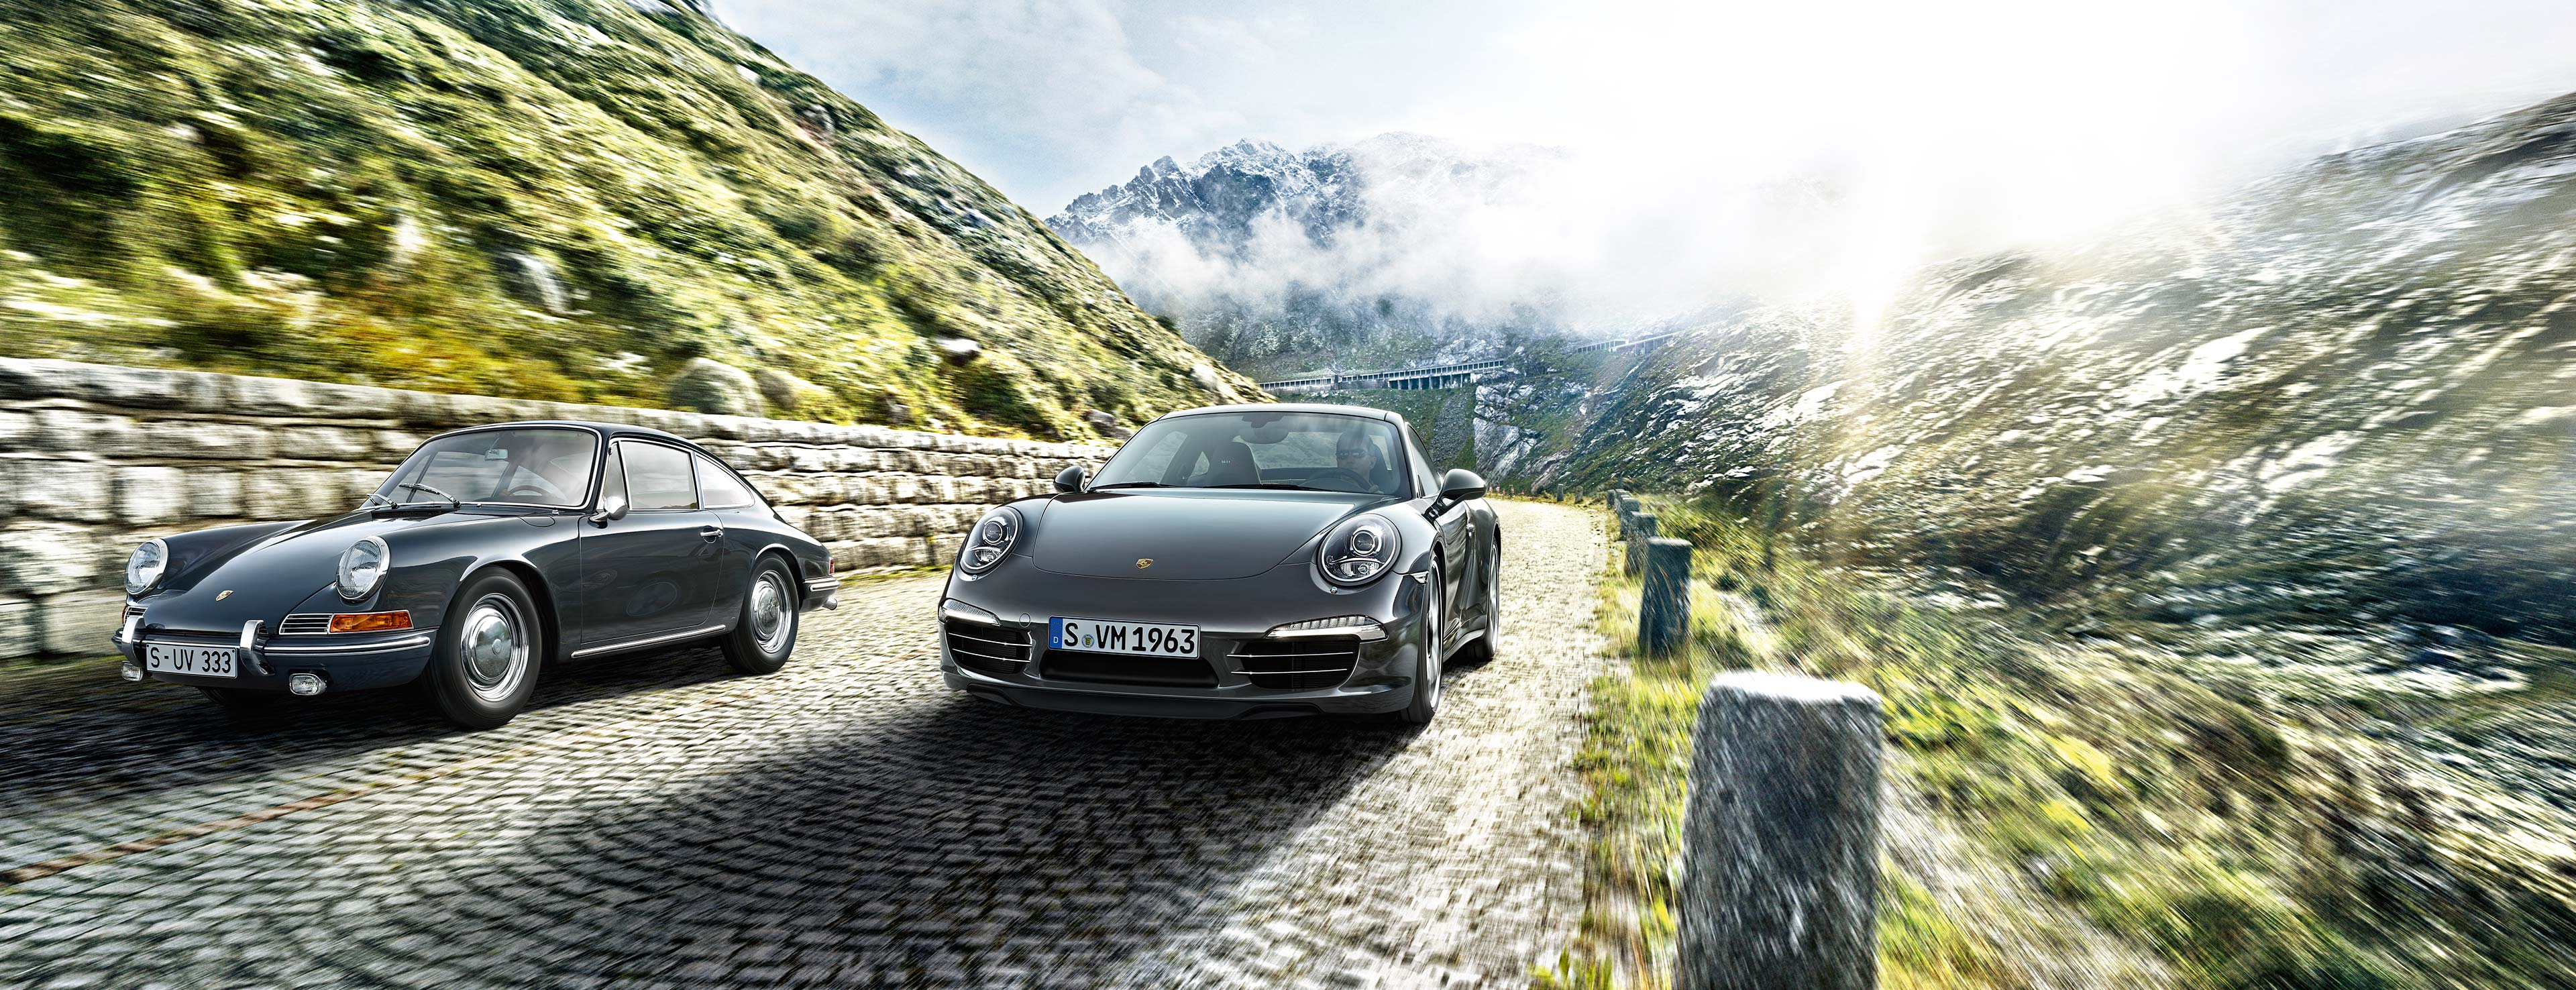 Used Porsche Cars For Sale In Germany